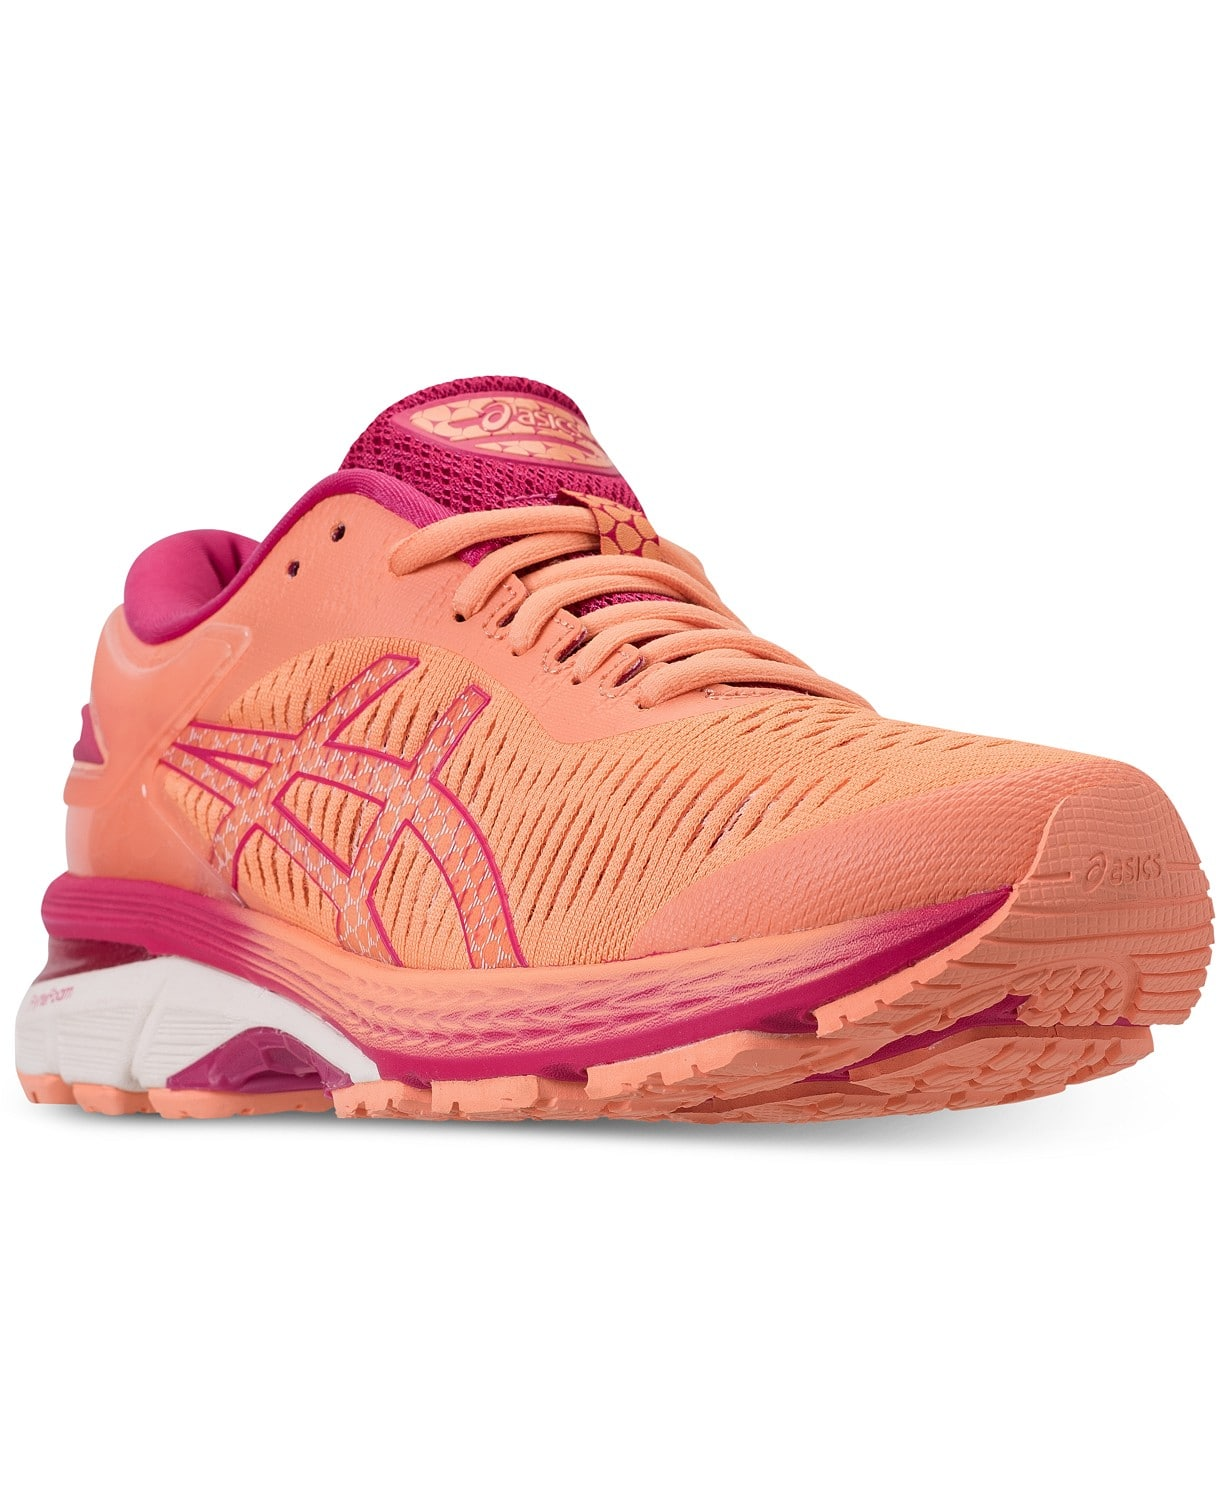 Asics Gel-Kayano 25 Women's $60